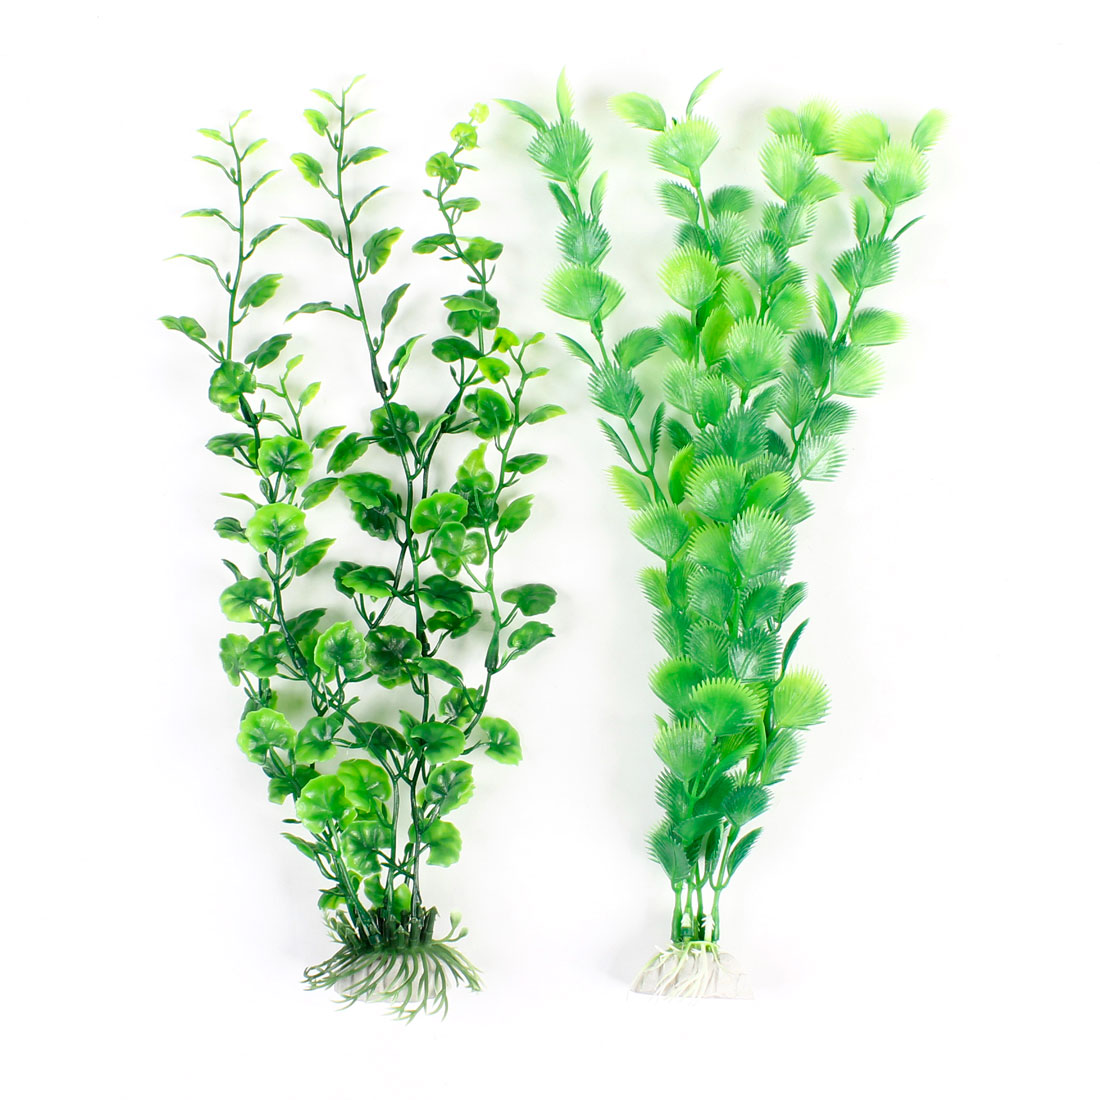 2 Pcs Green Plastic Water Plants Decor for Aquariums Fish Tank